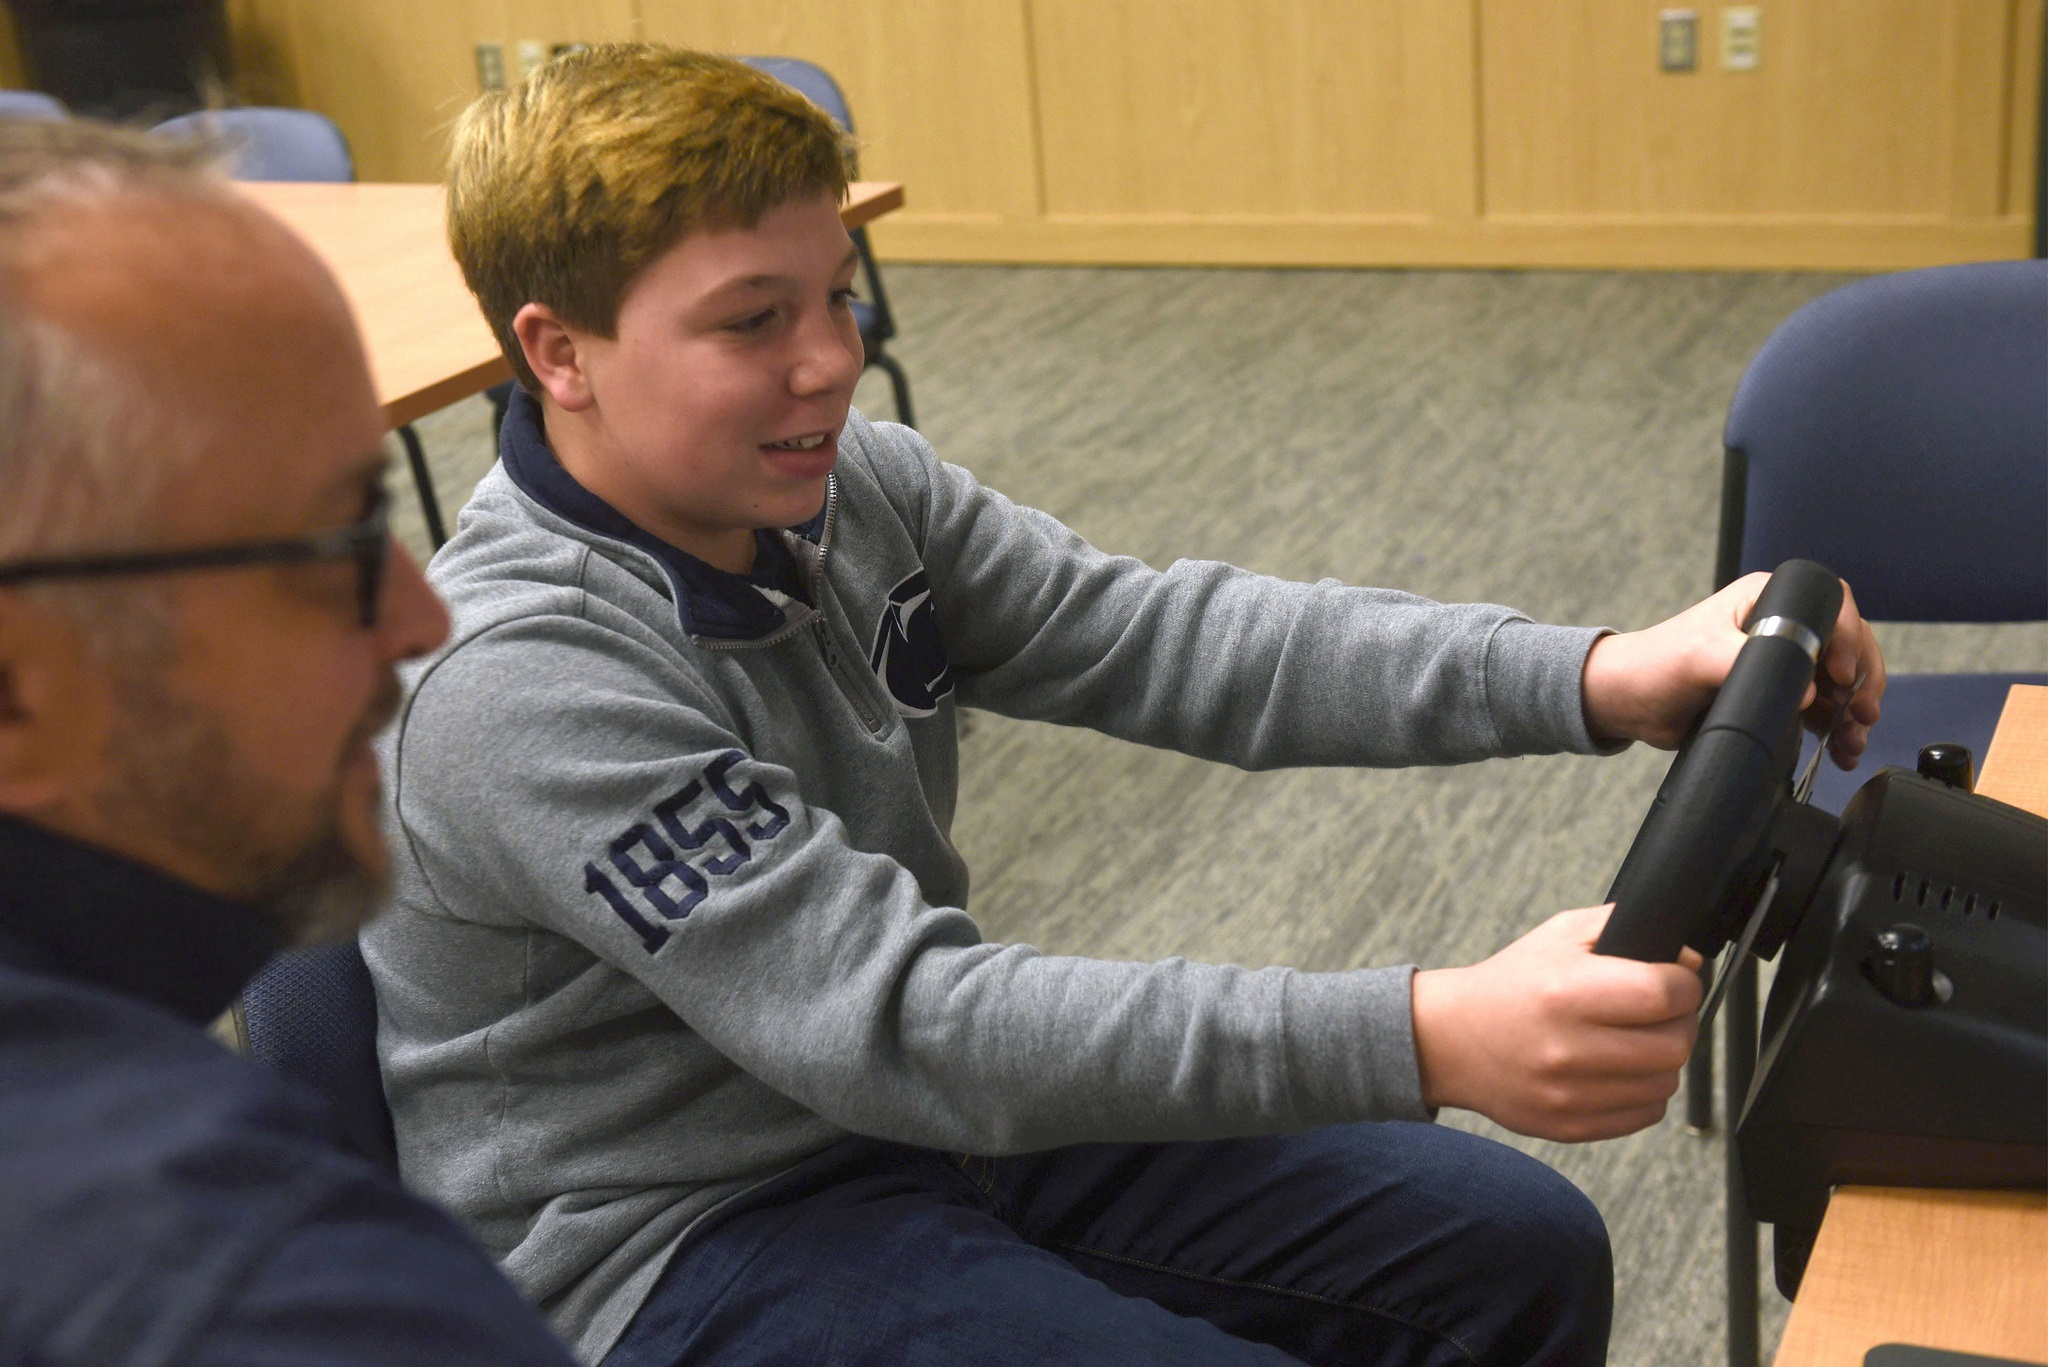 A teen boy smiles and holds the wheel of the driving simulator One Simple Decision. Next to him is a man with glasses, gray hair and a beard. Behind them are a table and chairs, carpet and a wooden cabinet.